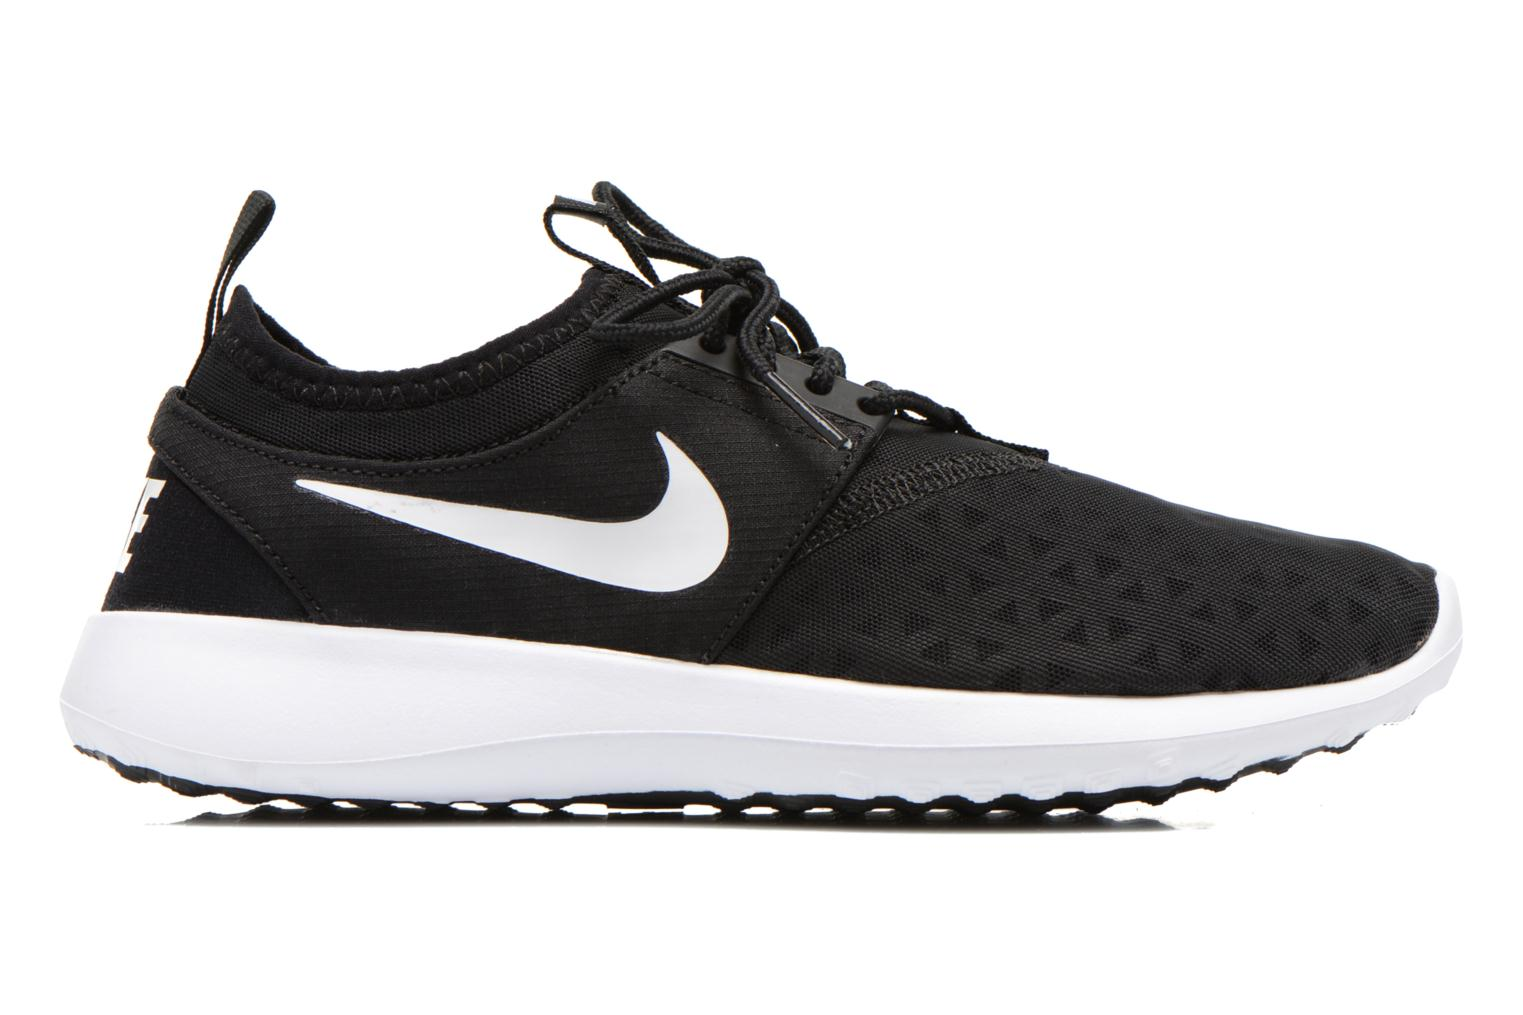 Wmns Nike Juvenate Black/white